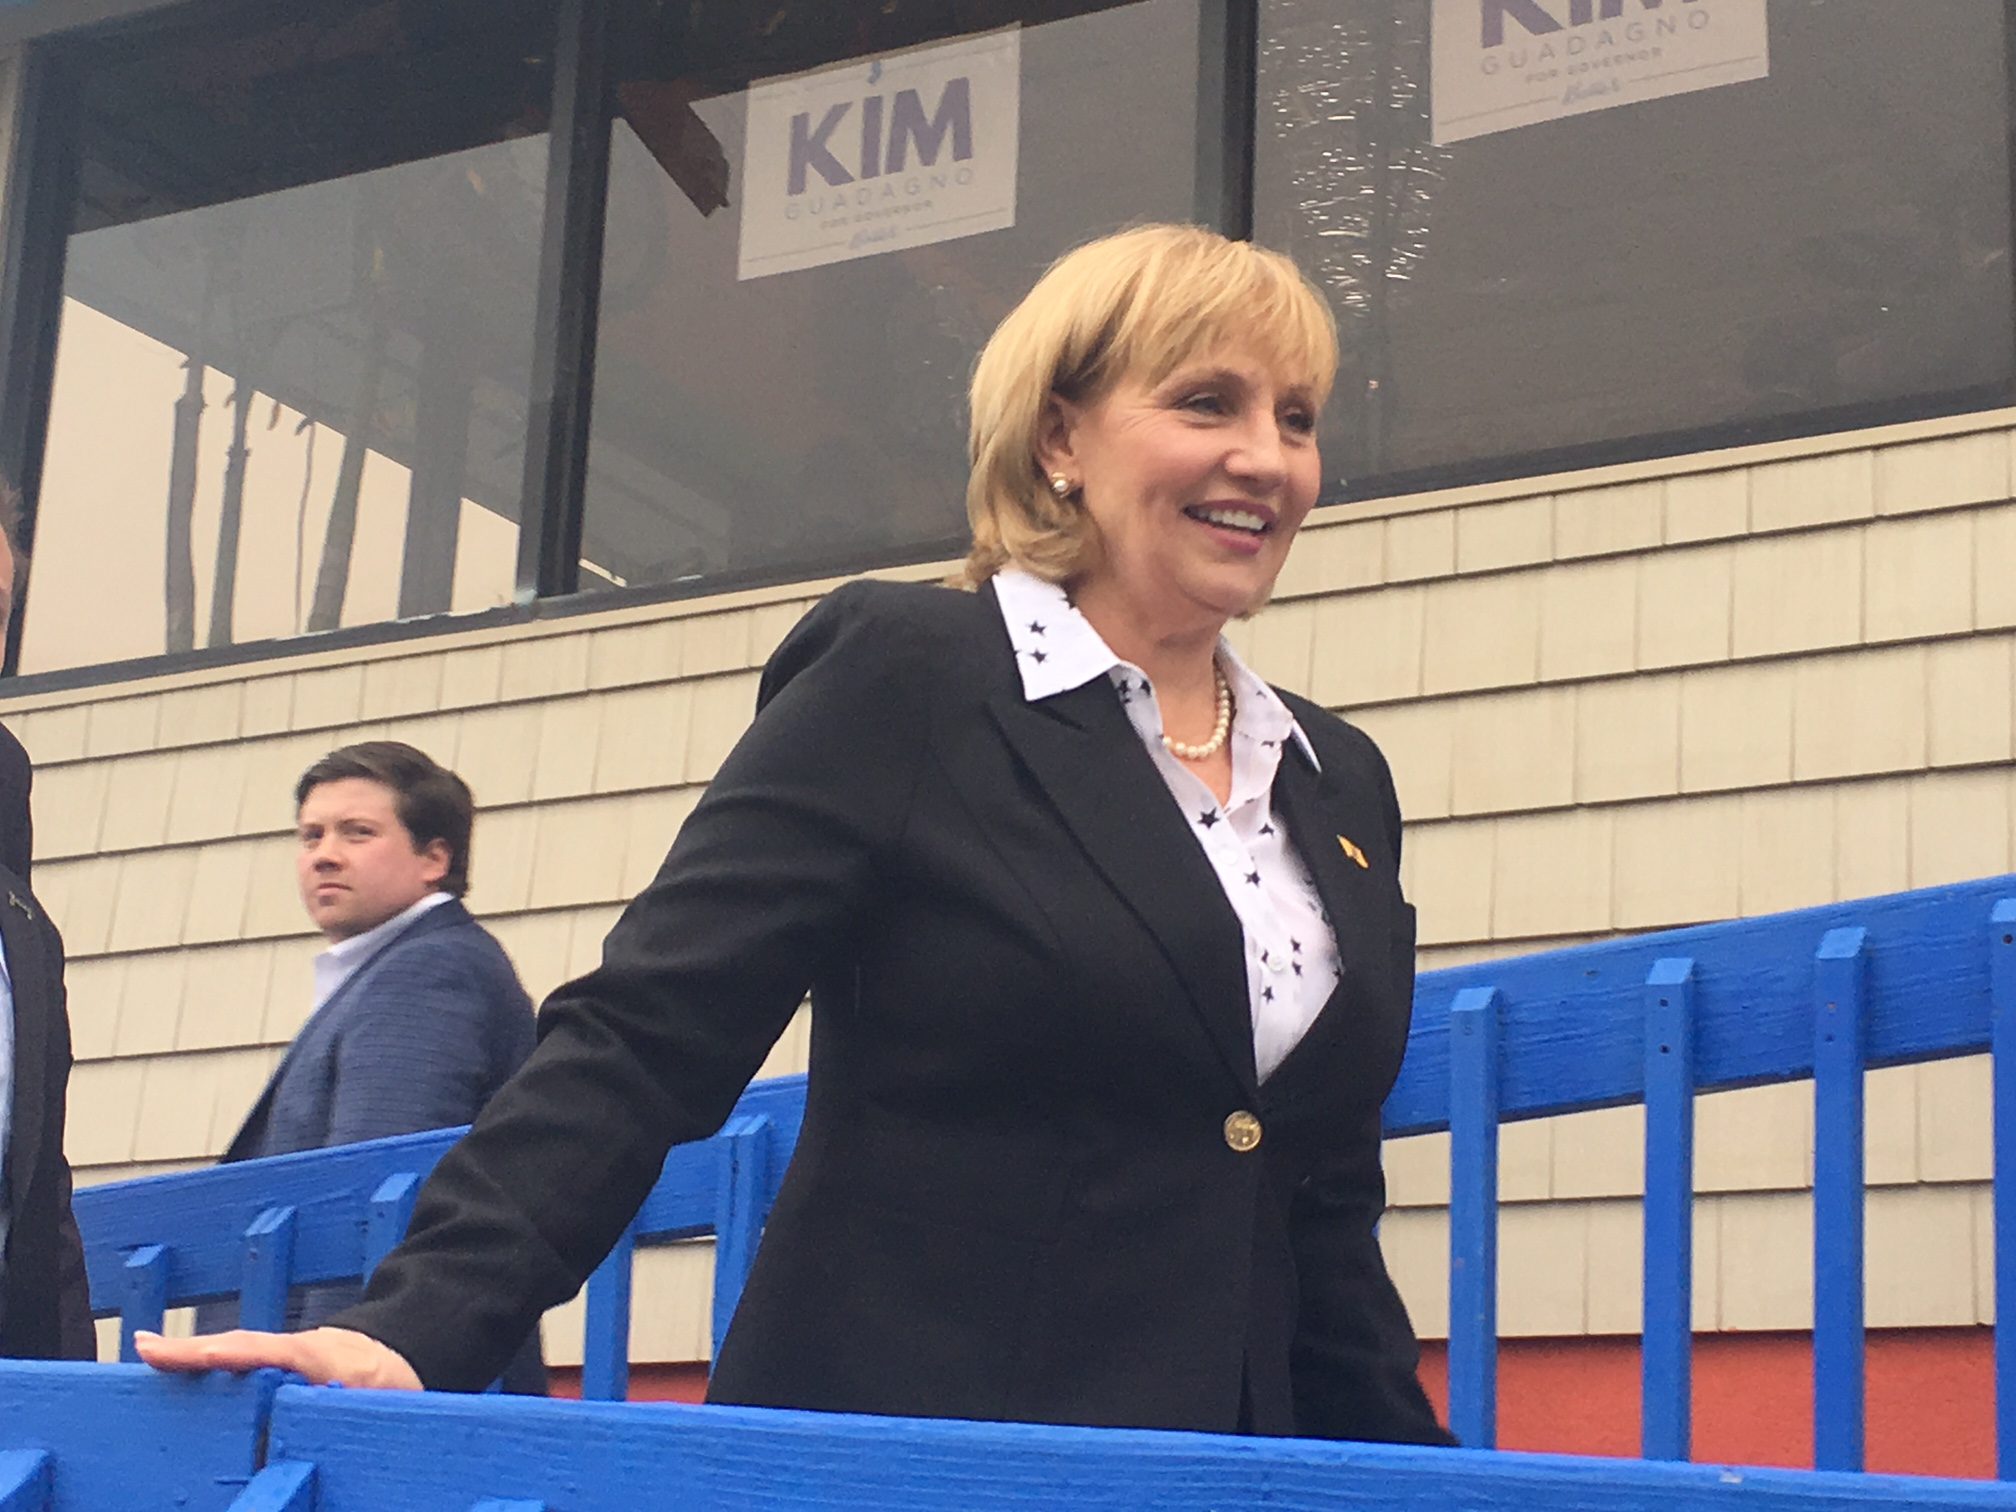 Guadagno announced her candidacy at La Playa restaurant in Keansburg.